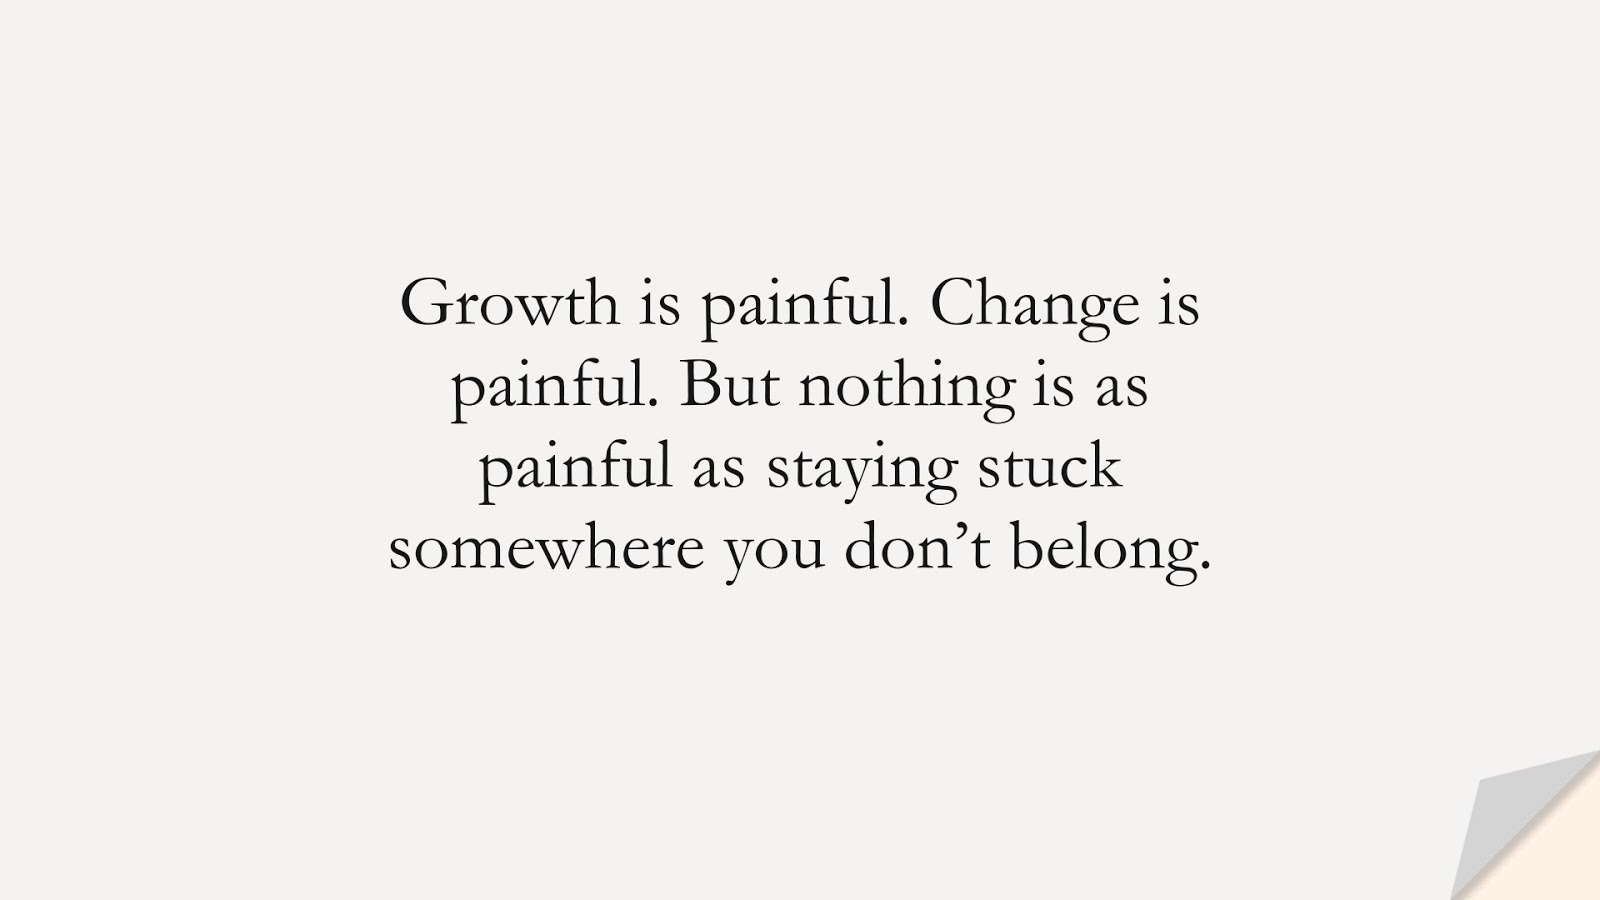 Growth is painful. Change is painful. But nothing is as painful as staying stuck somewhere you don't belong.FALSE